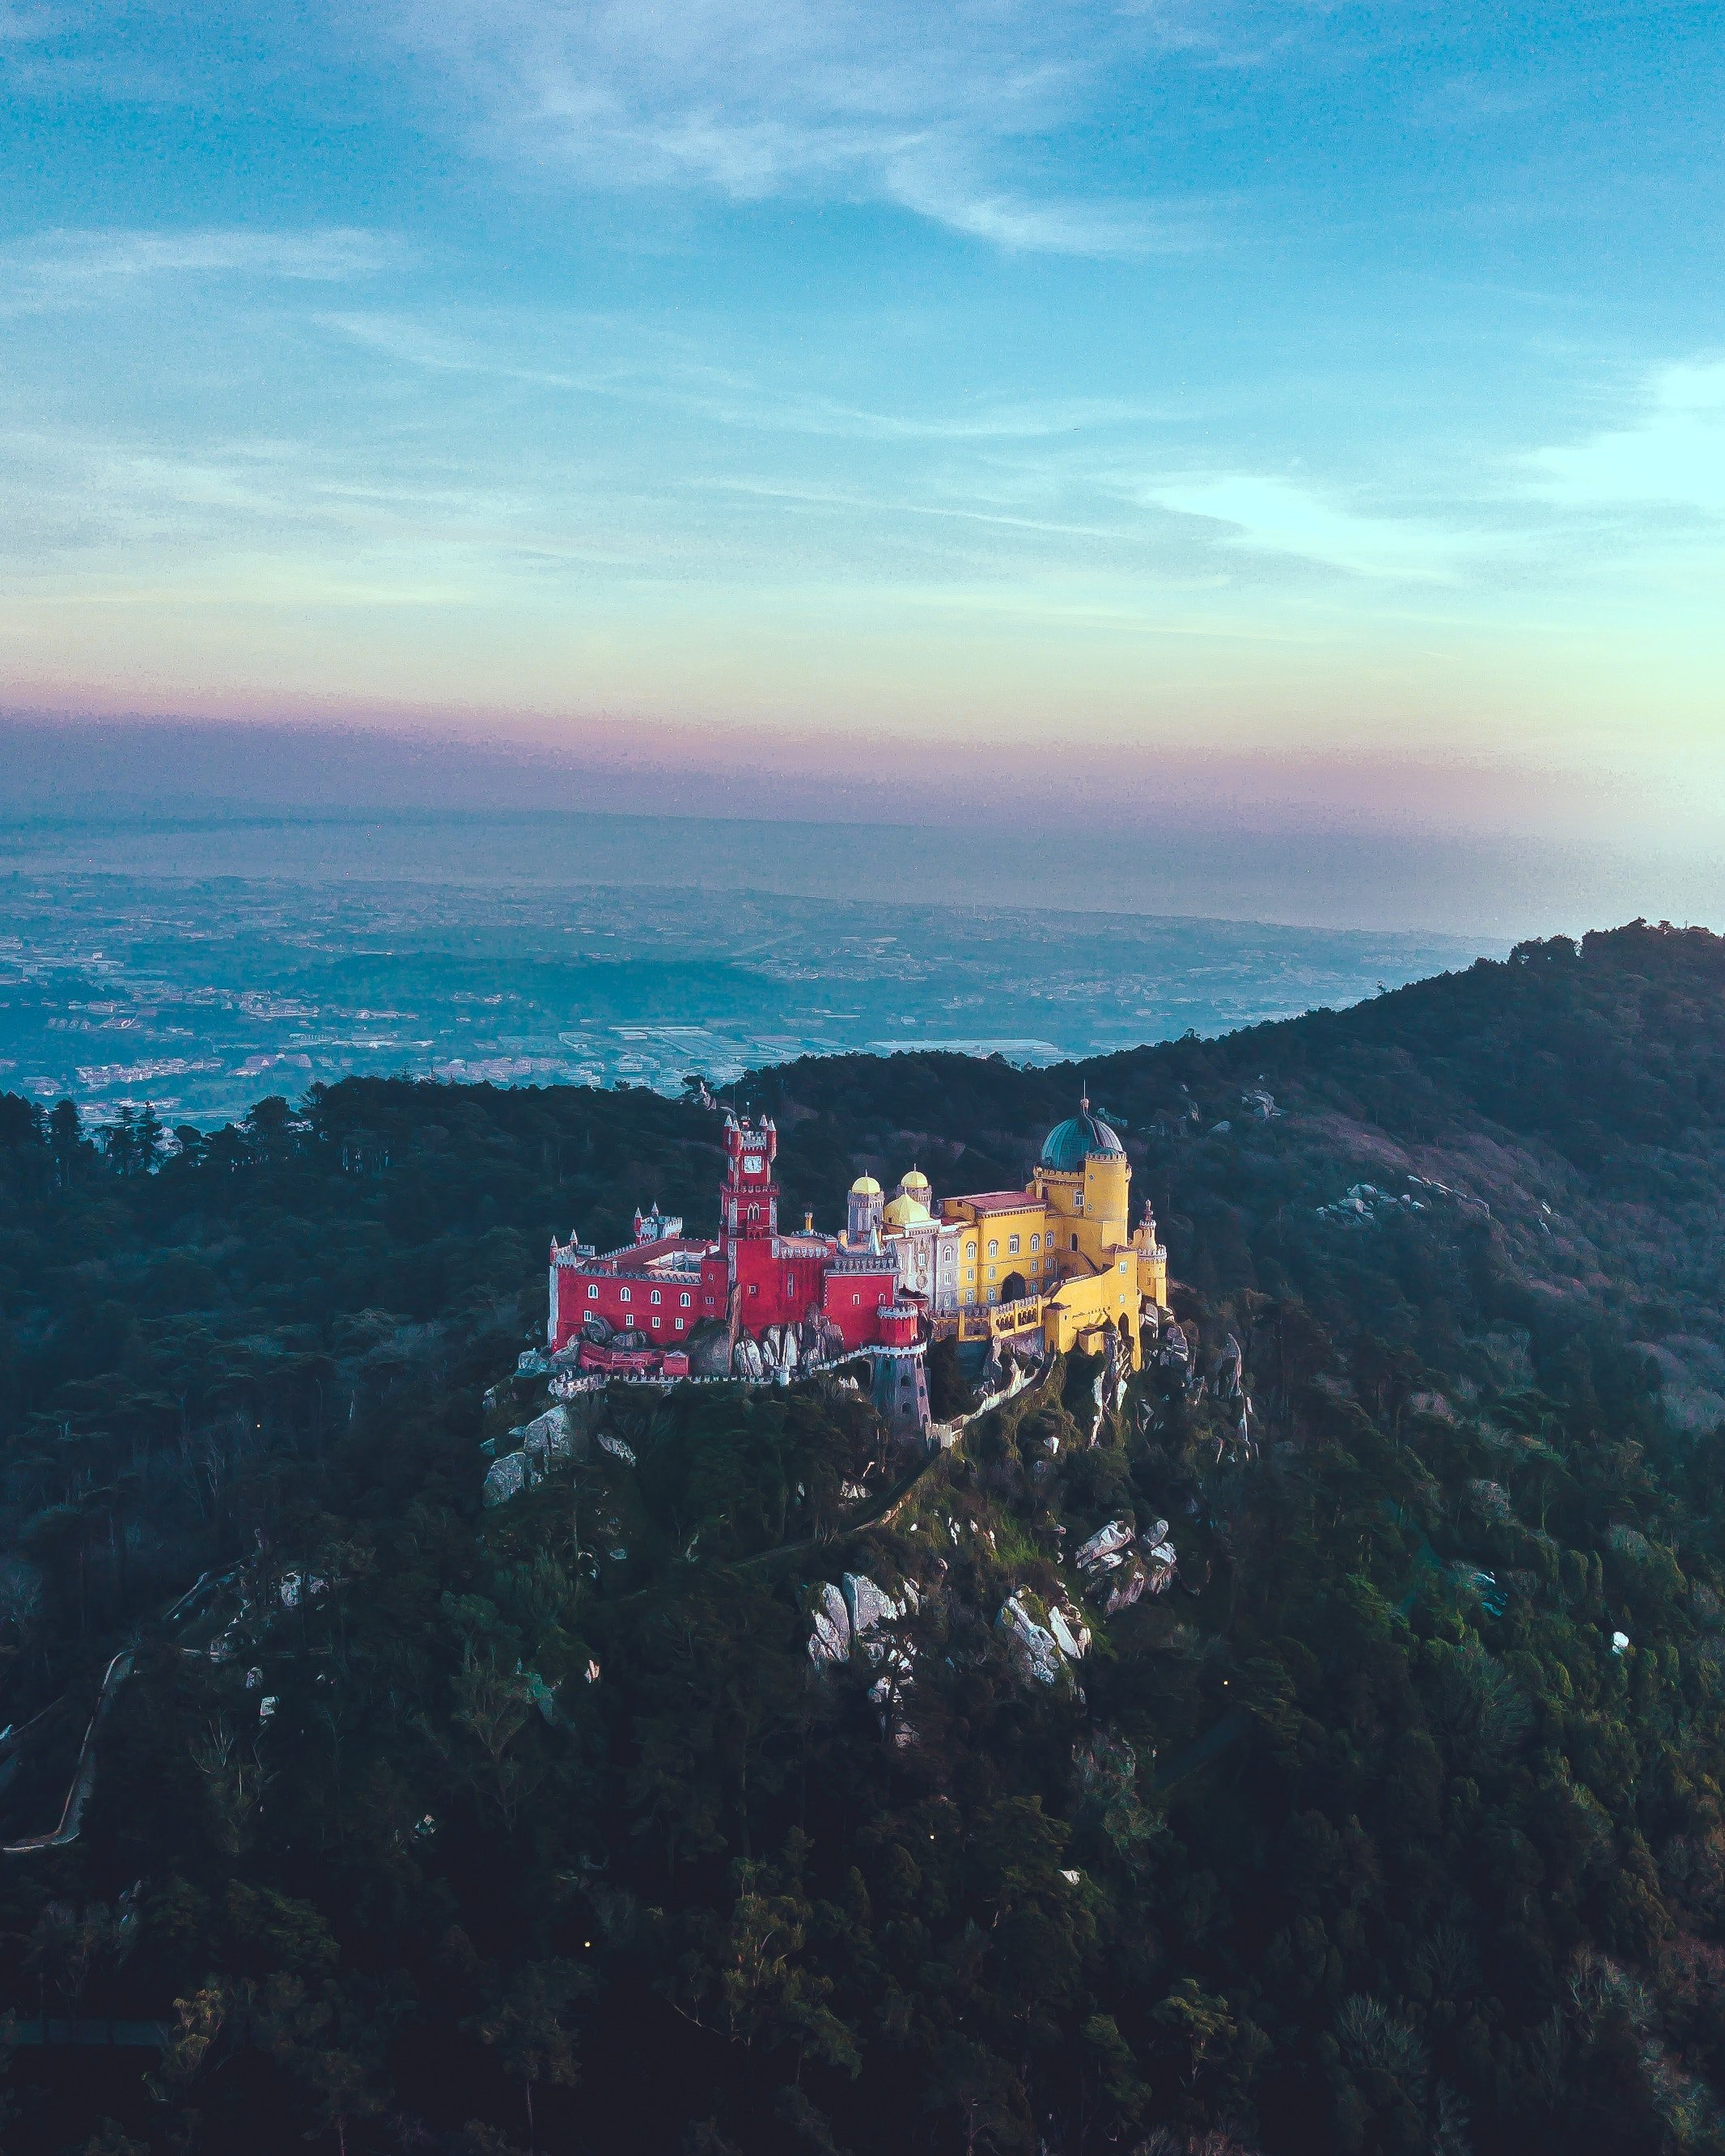 castles in Sintra, Portugal